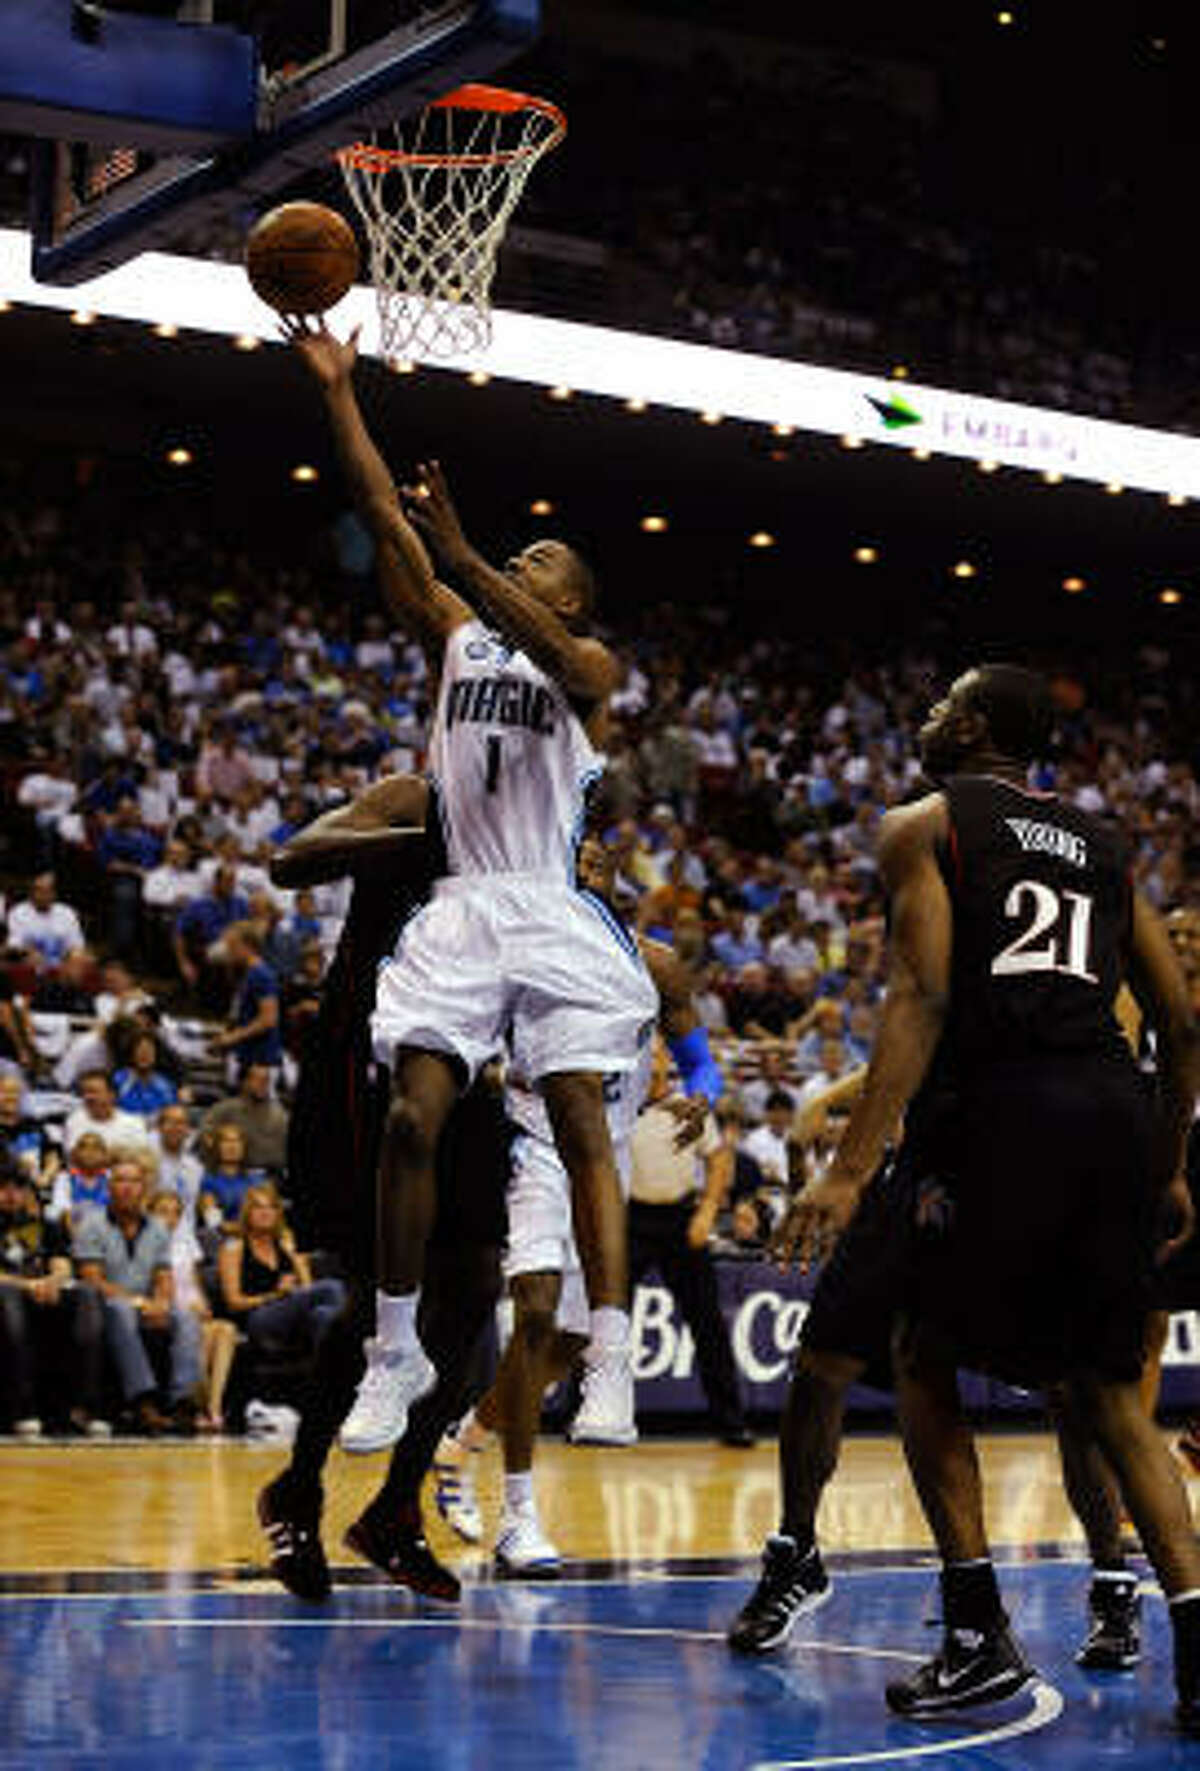 Rafer Alston of the Orlando Magic drives to the basket against Thaddeus Young of the Philadelphia 76ers. The Magic beat the Sixers 96-87 to make the series tied 1-1.